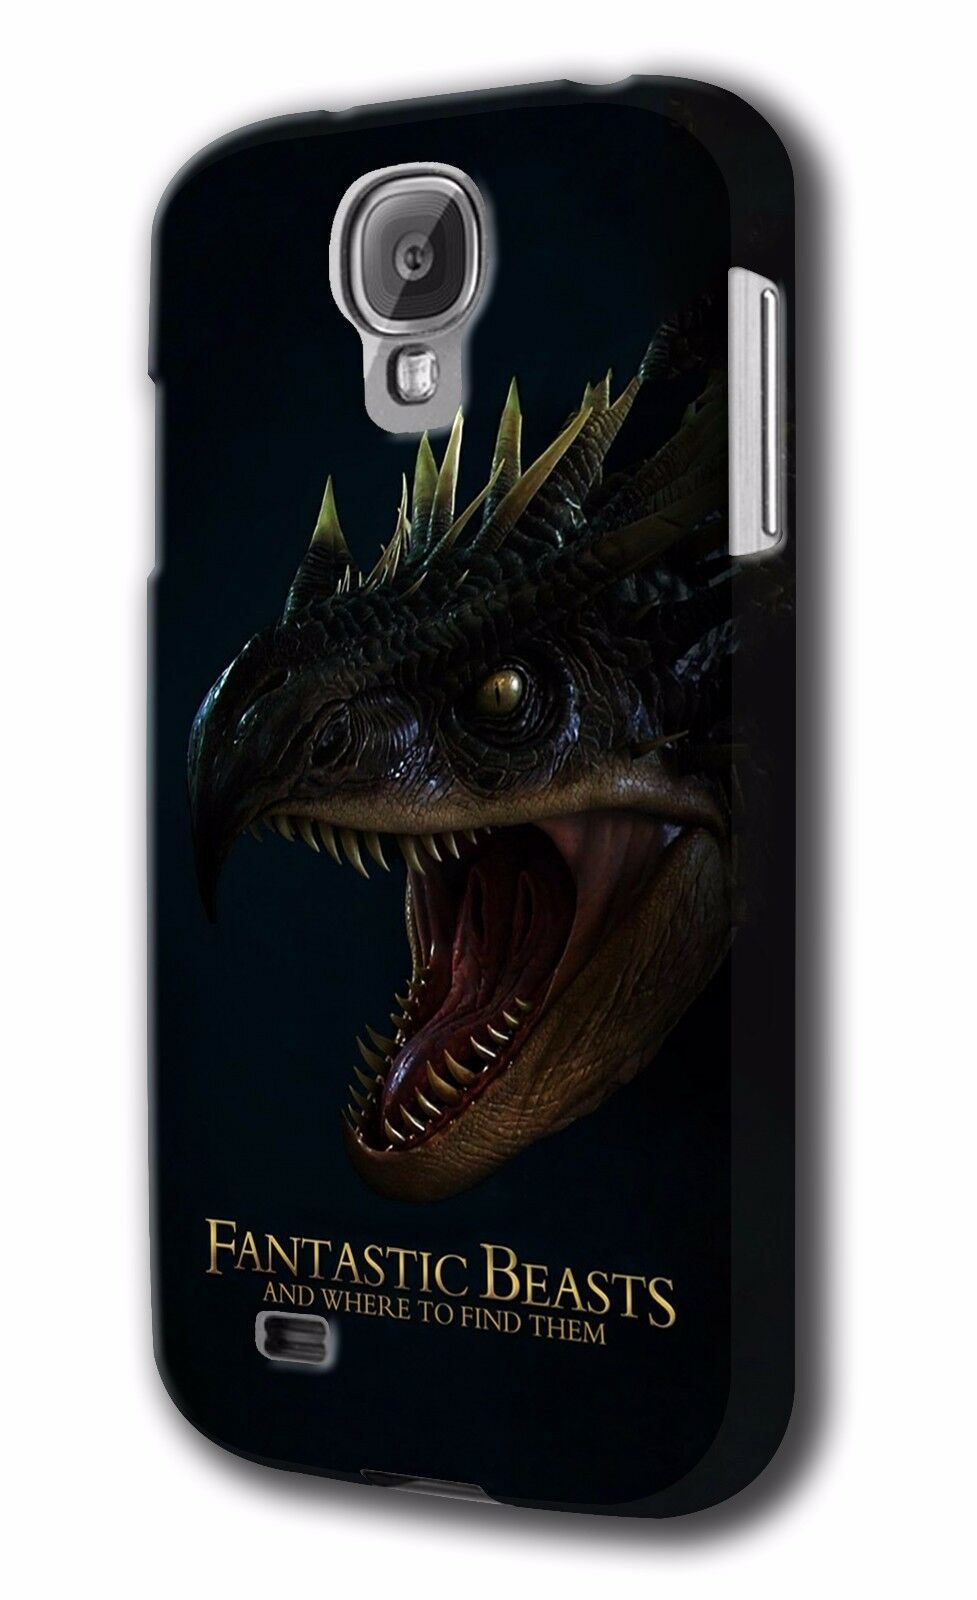 Fantastic Beasts Samsung Galaxy S4 5 6 7 Edge Note 3 4 5 Plus Case Cover 2